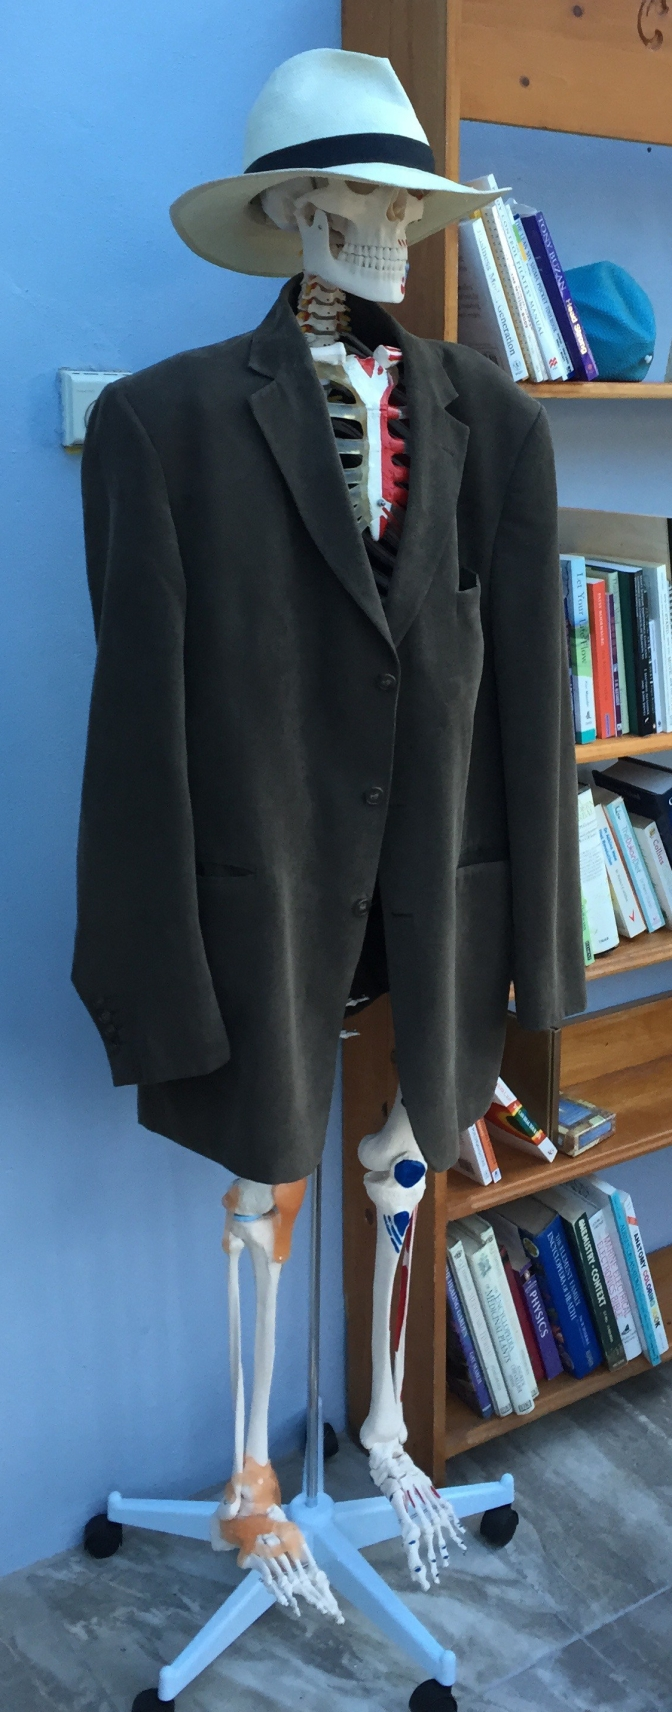 The perfect student or the Alexander Overcoat